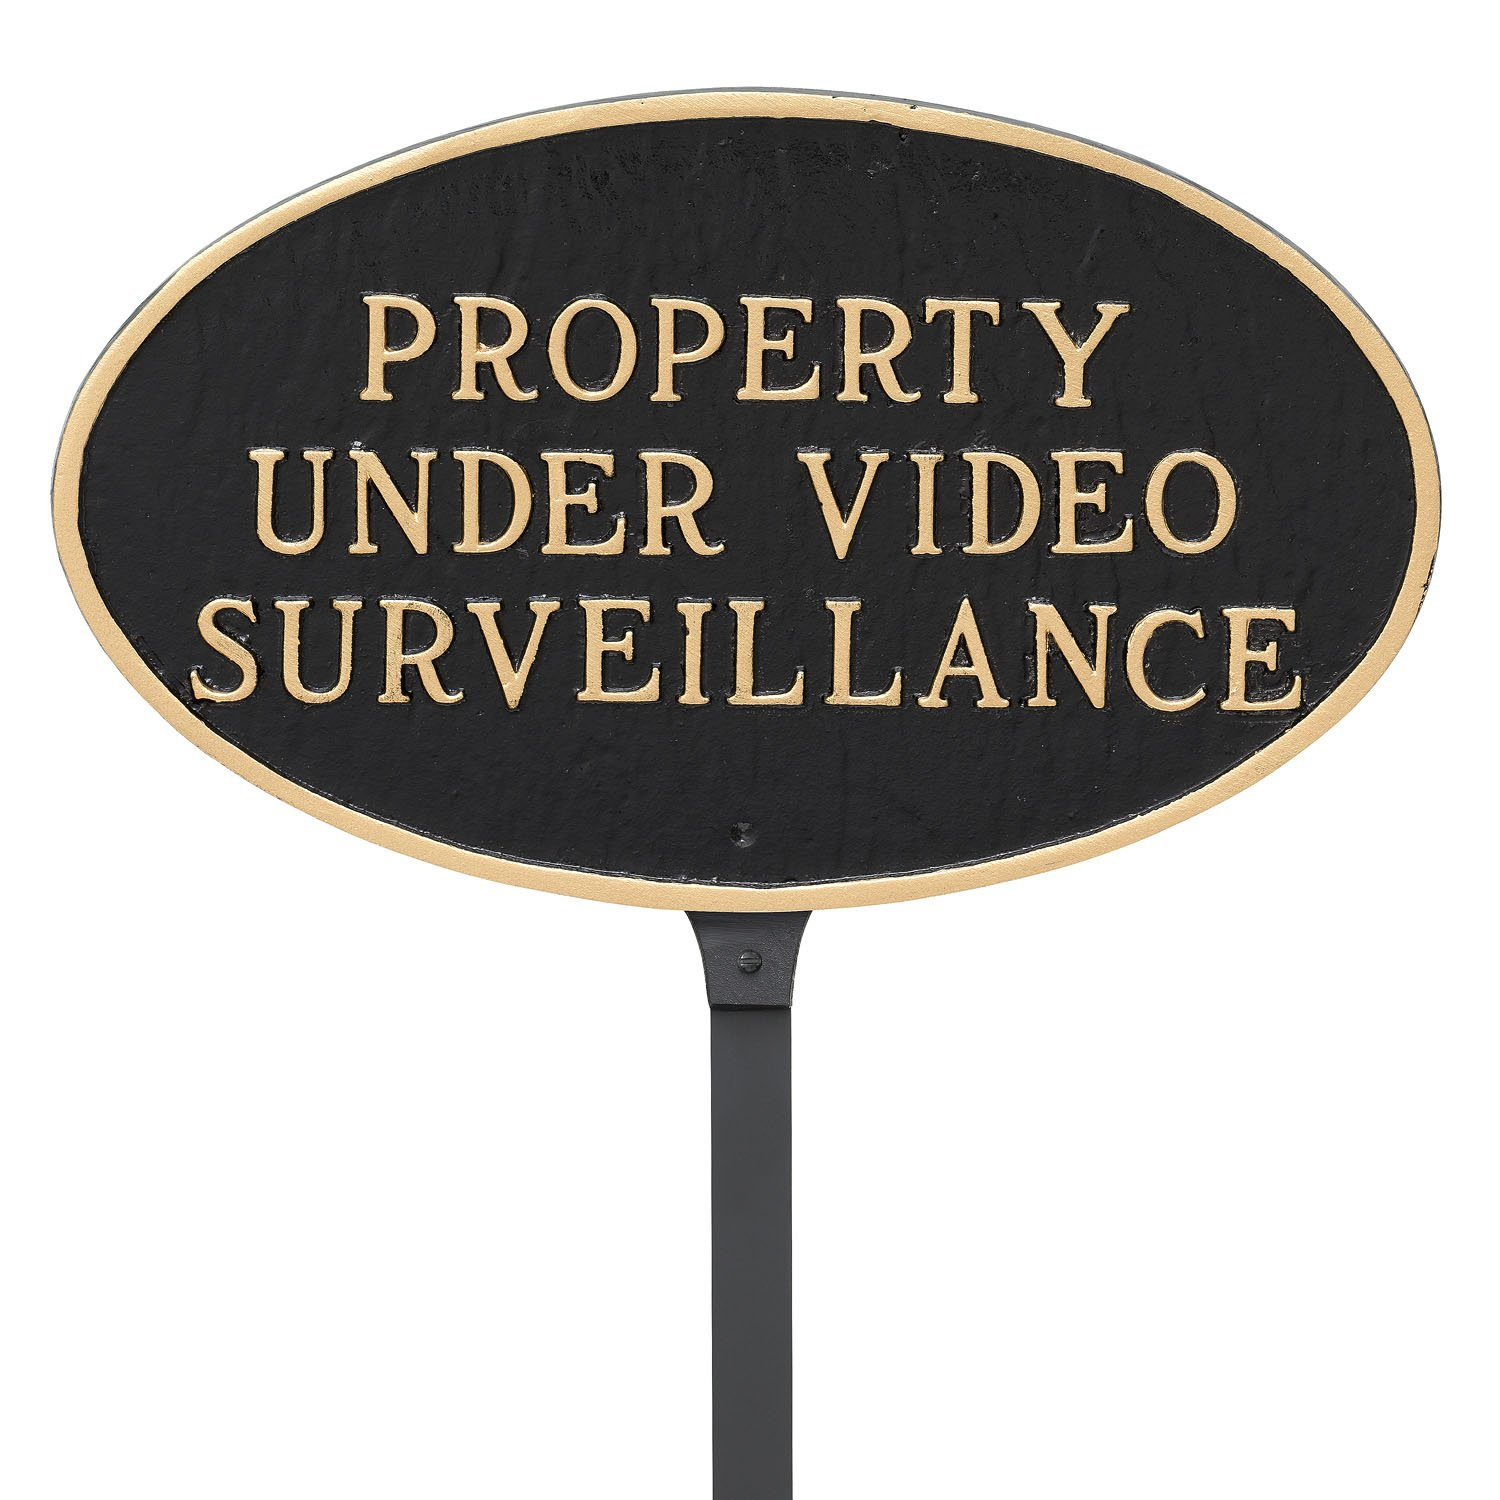 Montague Metal Products 6'' x 10'' Property Under Video Surveillance Statement Plaque with 23'' Stake, Black/Gold by Montague Metal Products